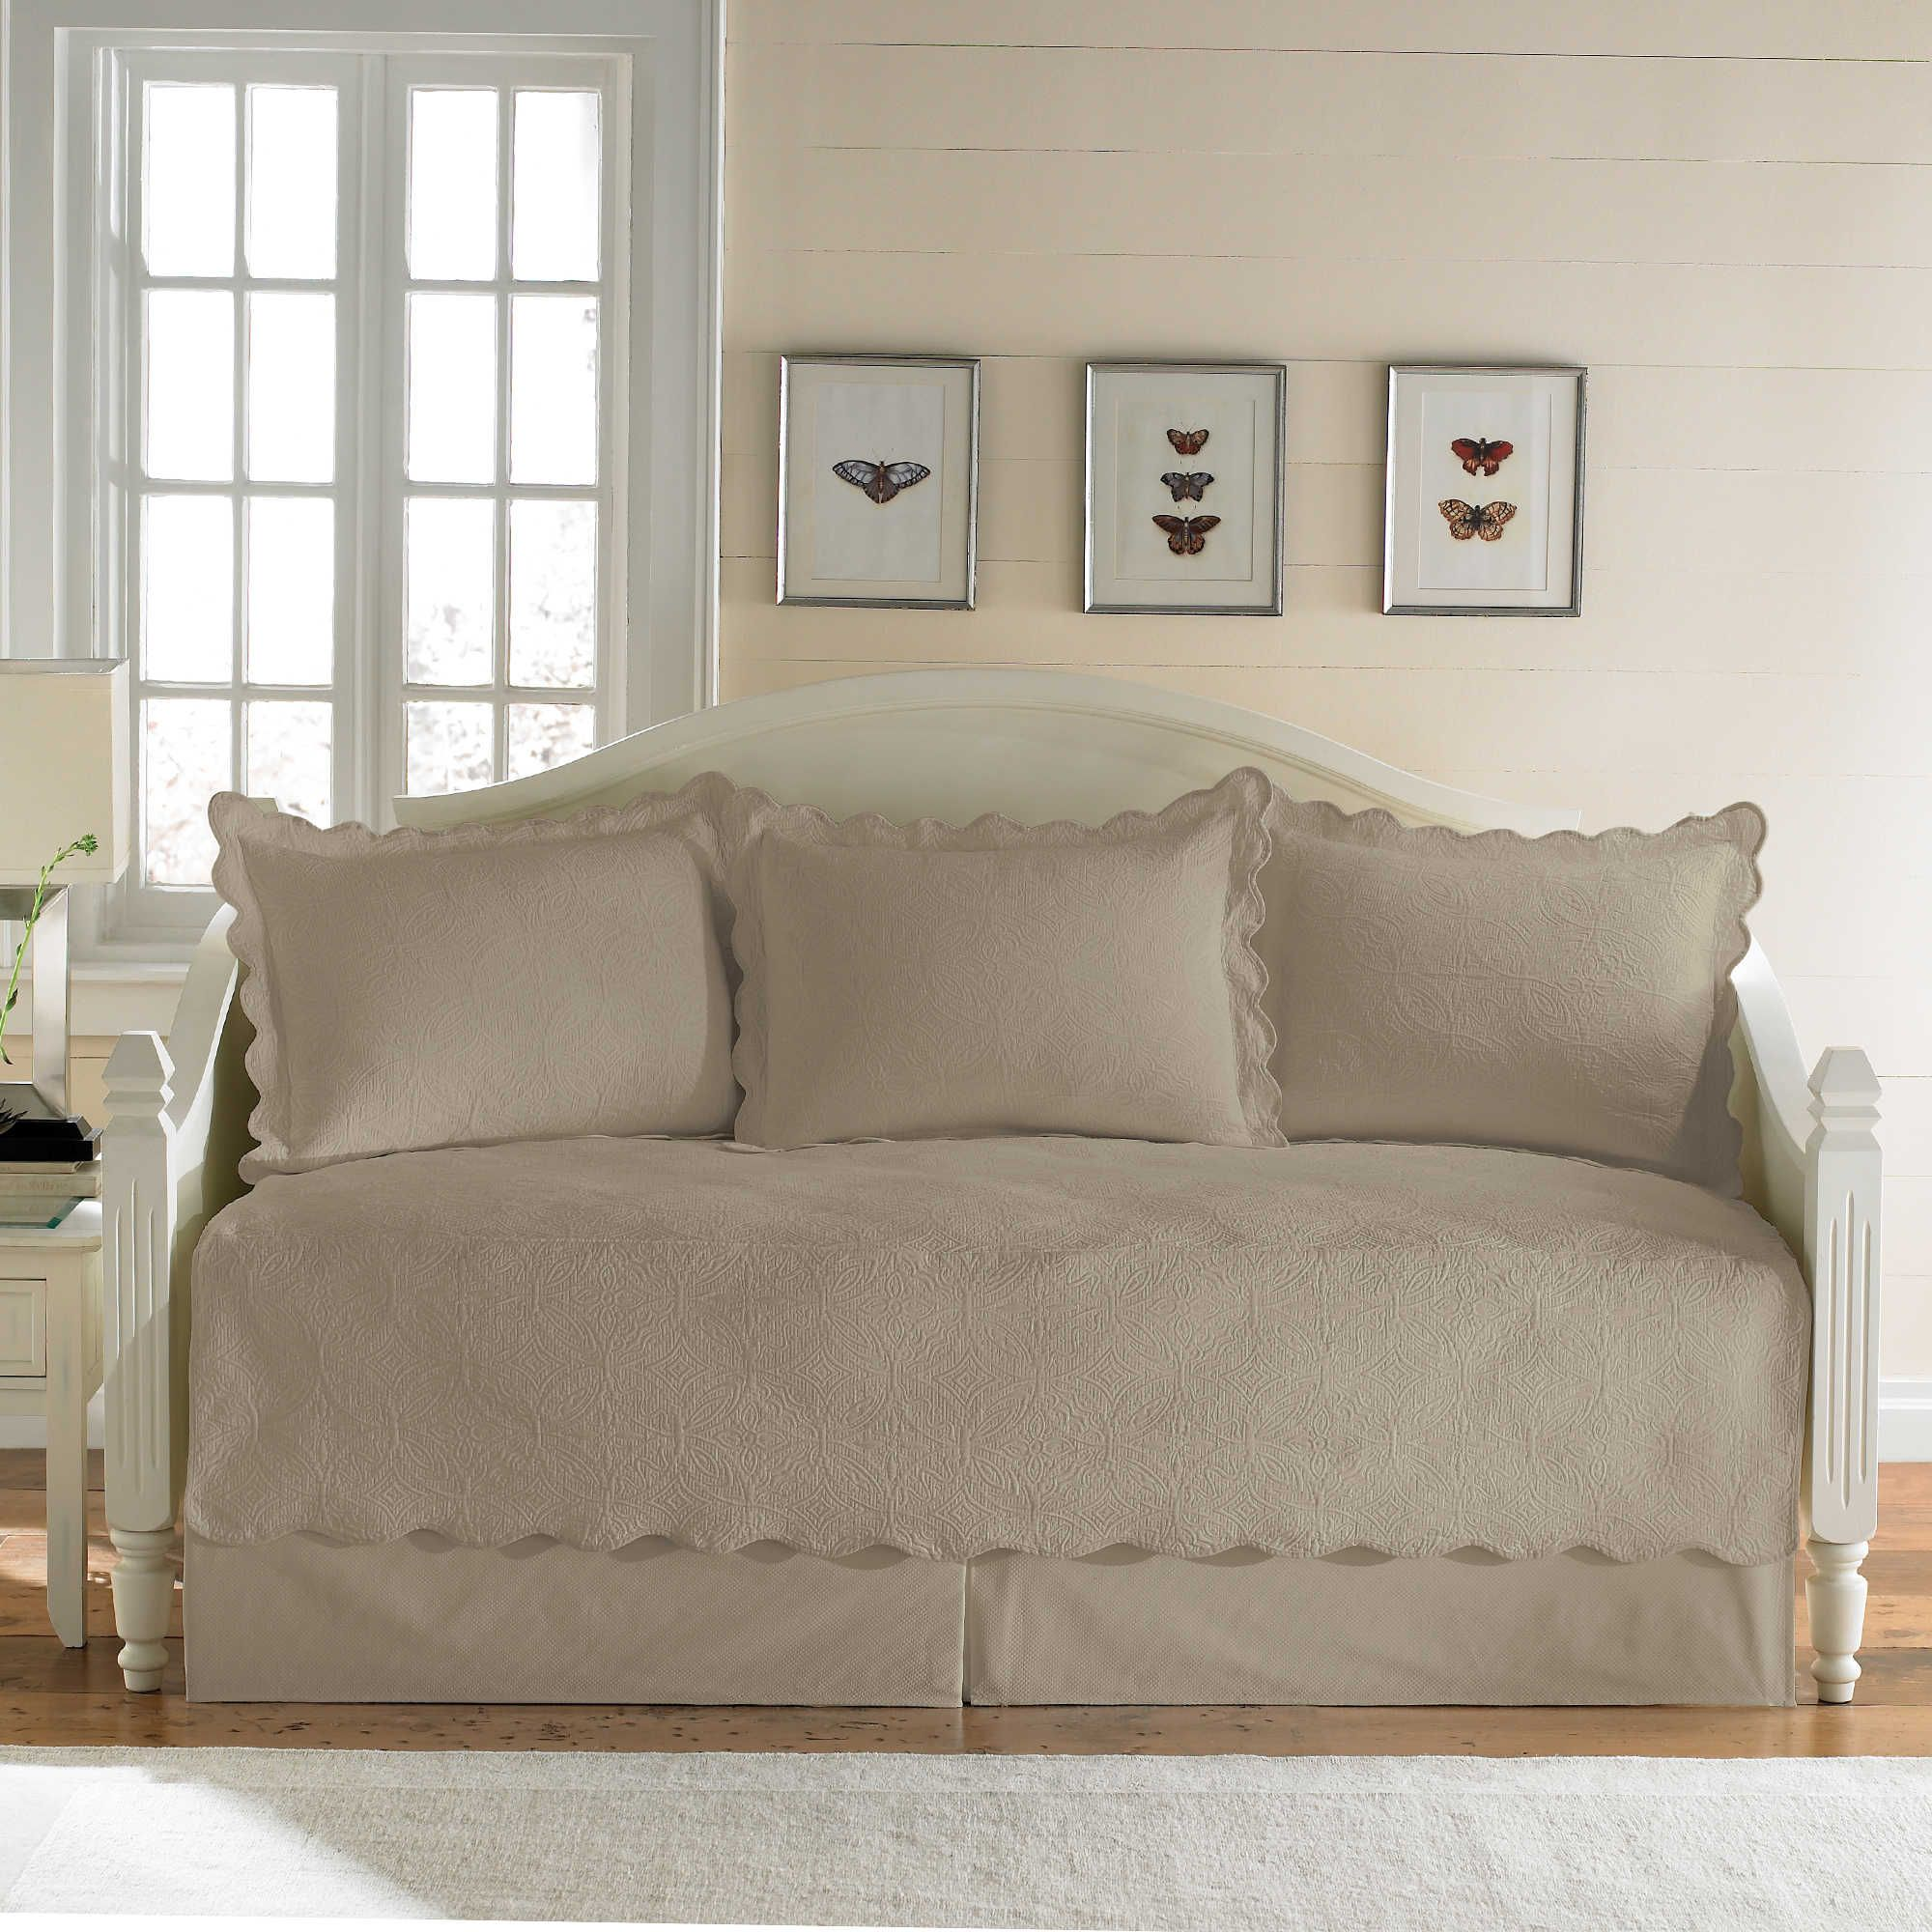 - Coventry 5-Piece Matelassé Daybed Set Daybed Bedding Sets